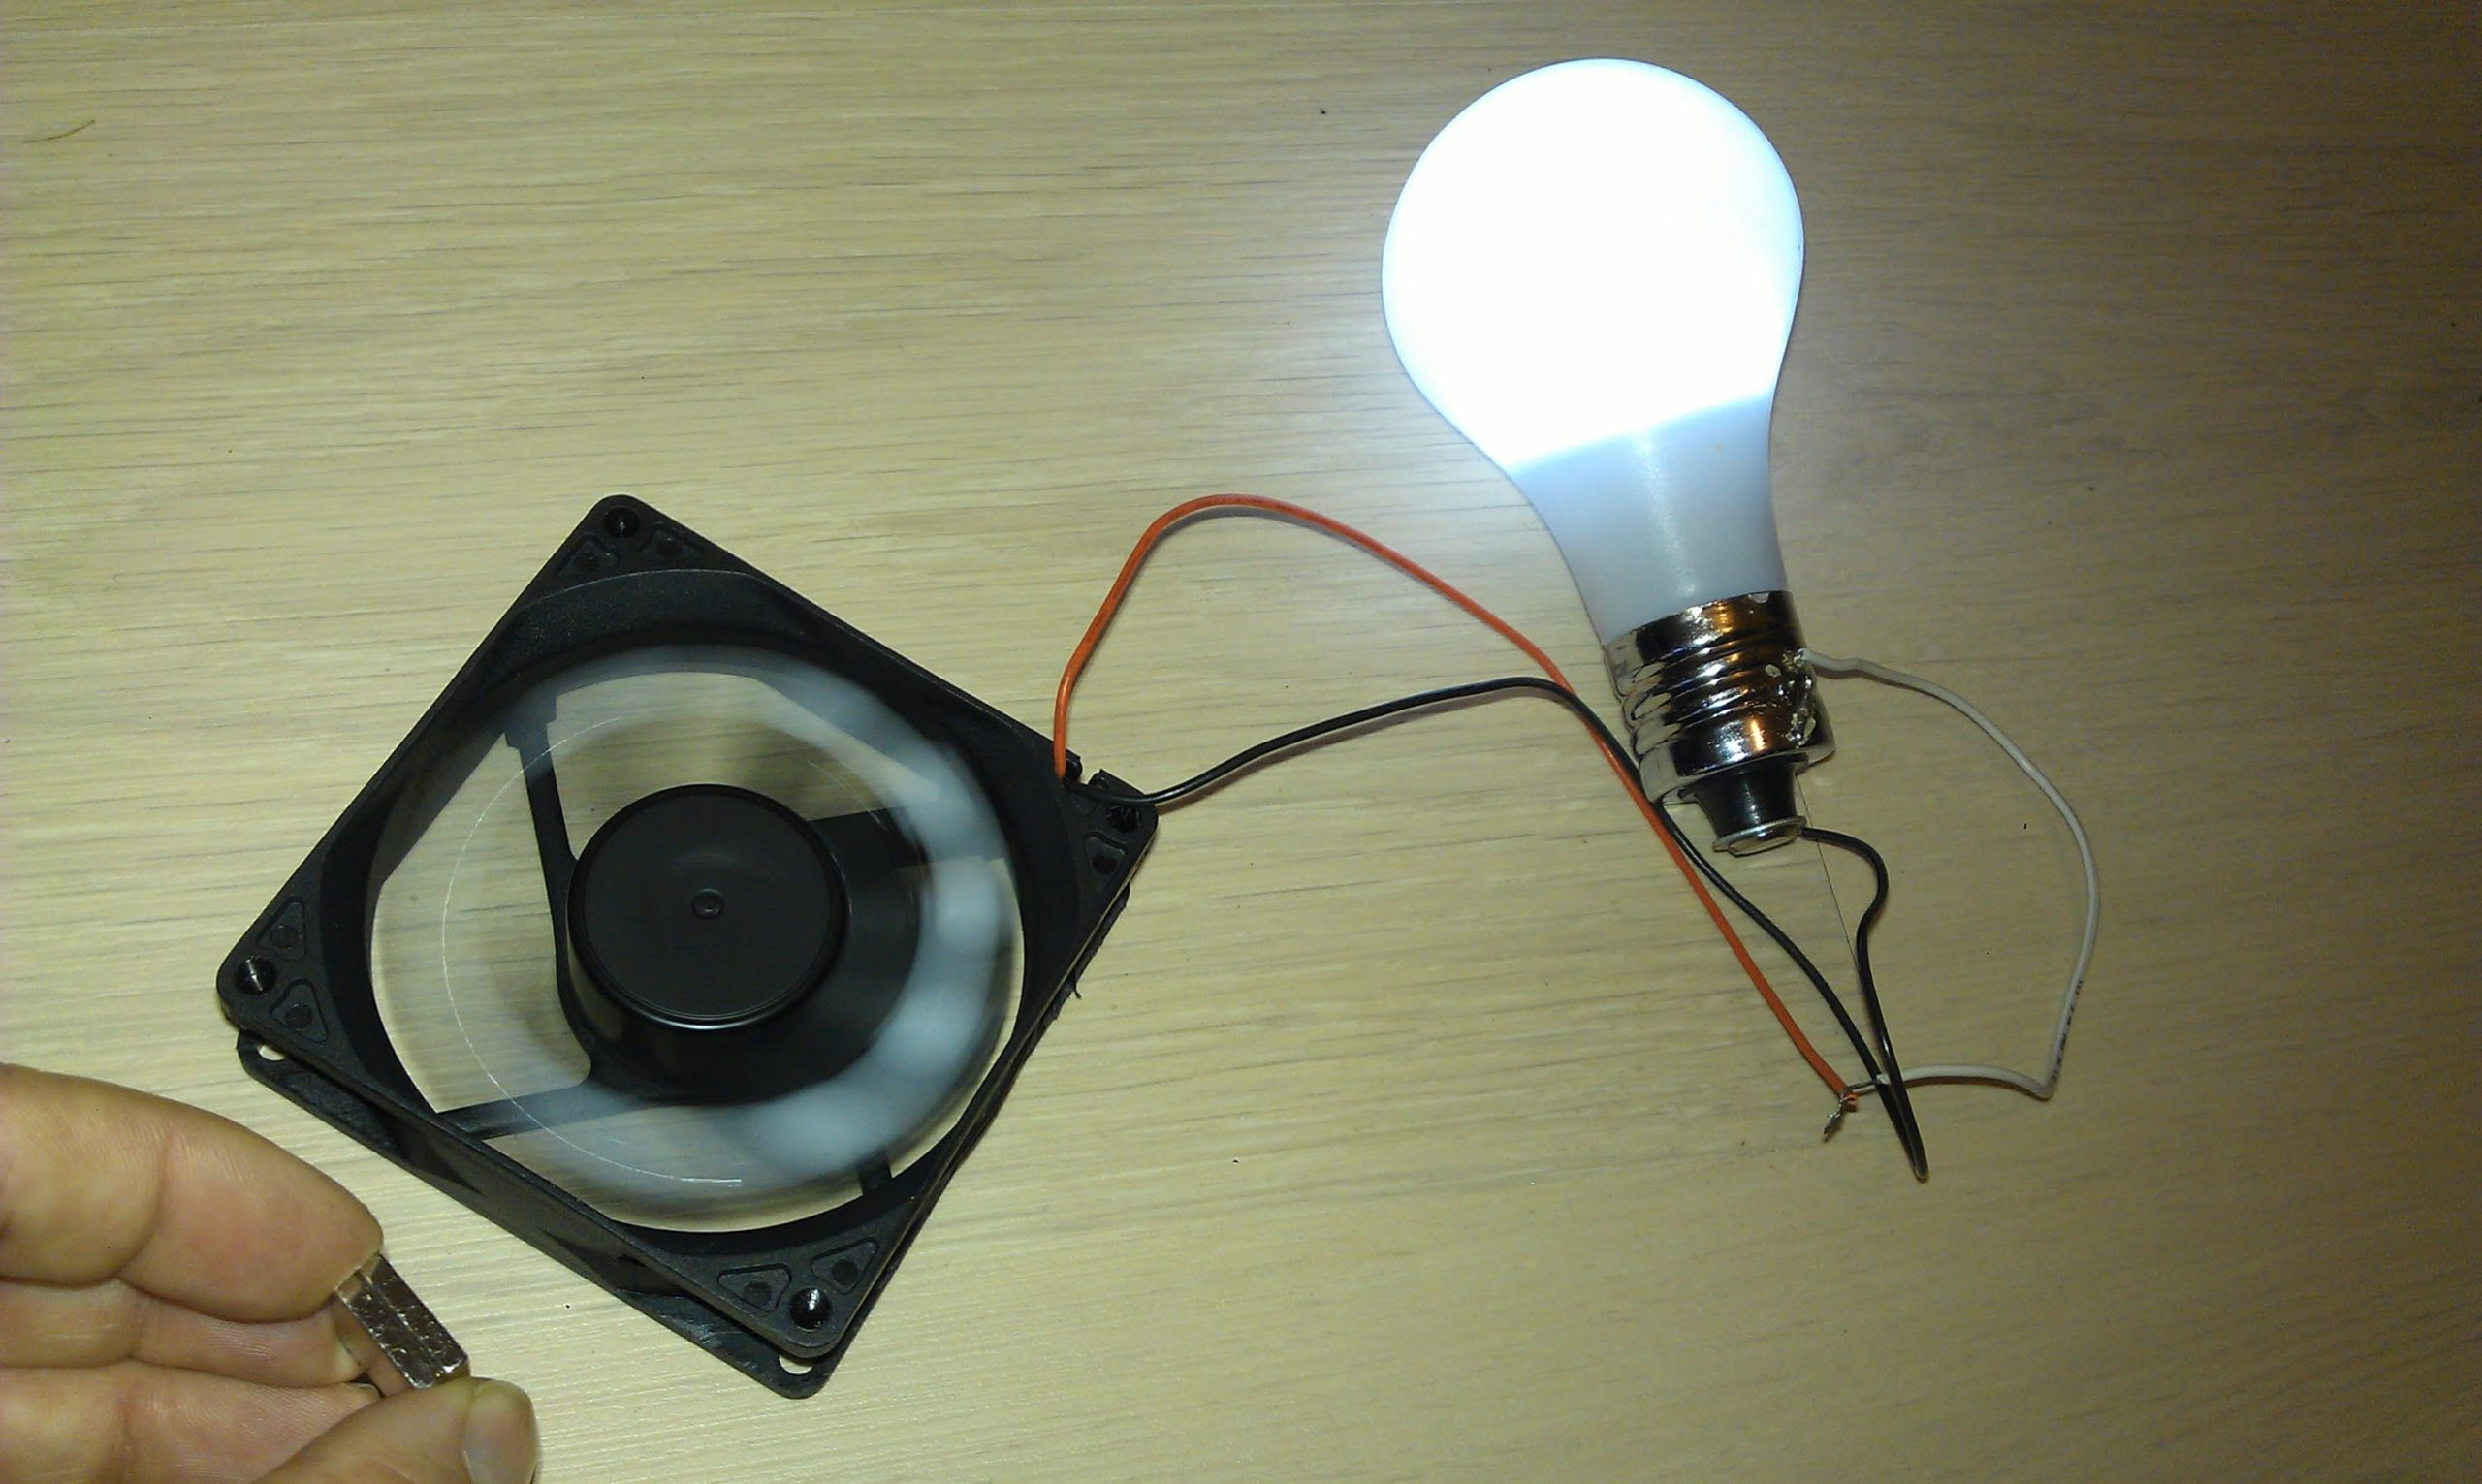 Free Energy Magnet Motor Fan Used As Free Energy Generator Quot Free Energy Quot Light Bulb